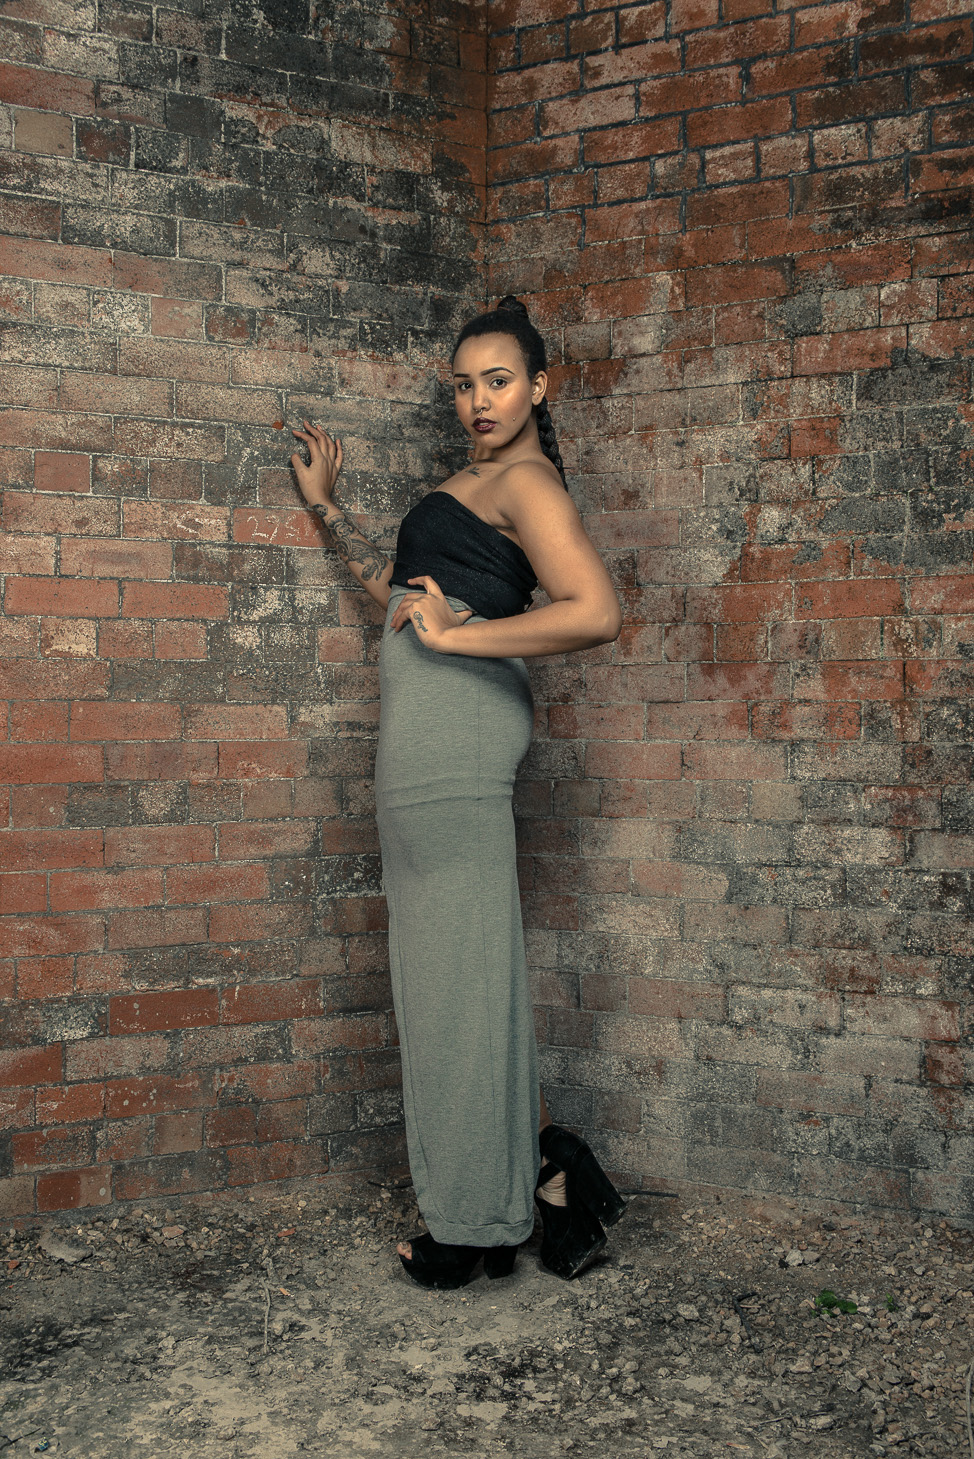 zaramia-ava-zaramiaava-leeds-fashion-designer-ethical-sustainable-tailored-minimalist-skirt-bandeau-maxi-versatile-drape-grey-bodysuit-black-obi-belt-wrap-cowl-styling-womenswear-models-photoshoot-31